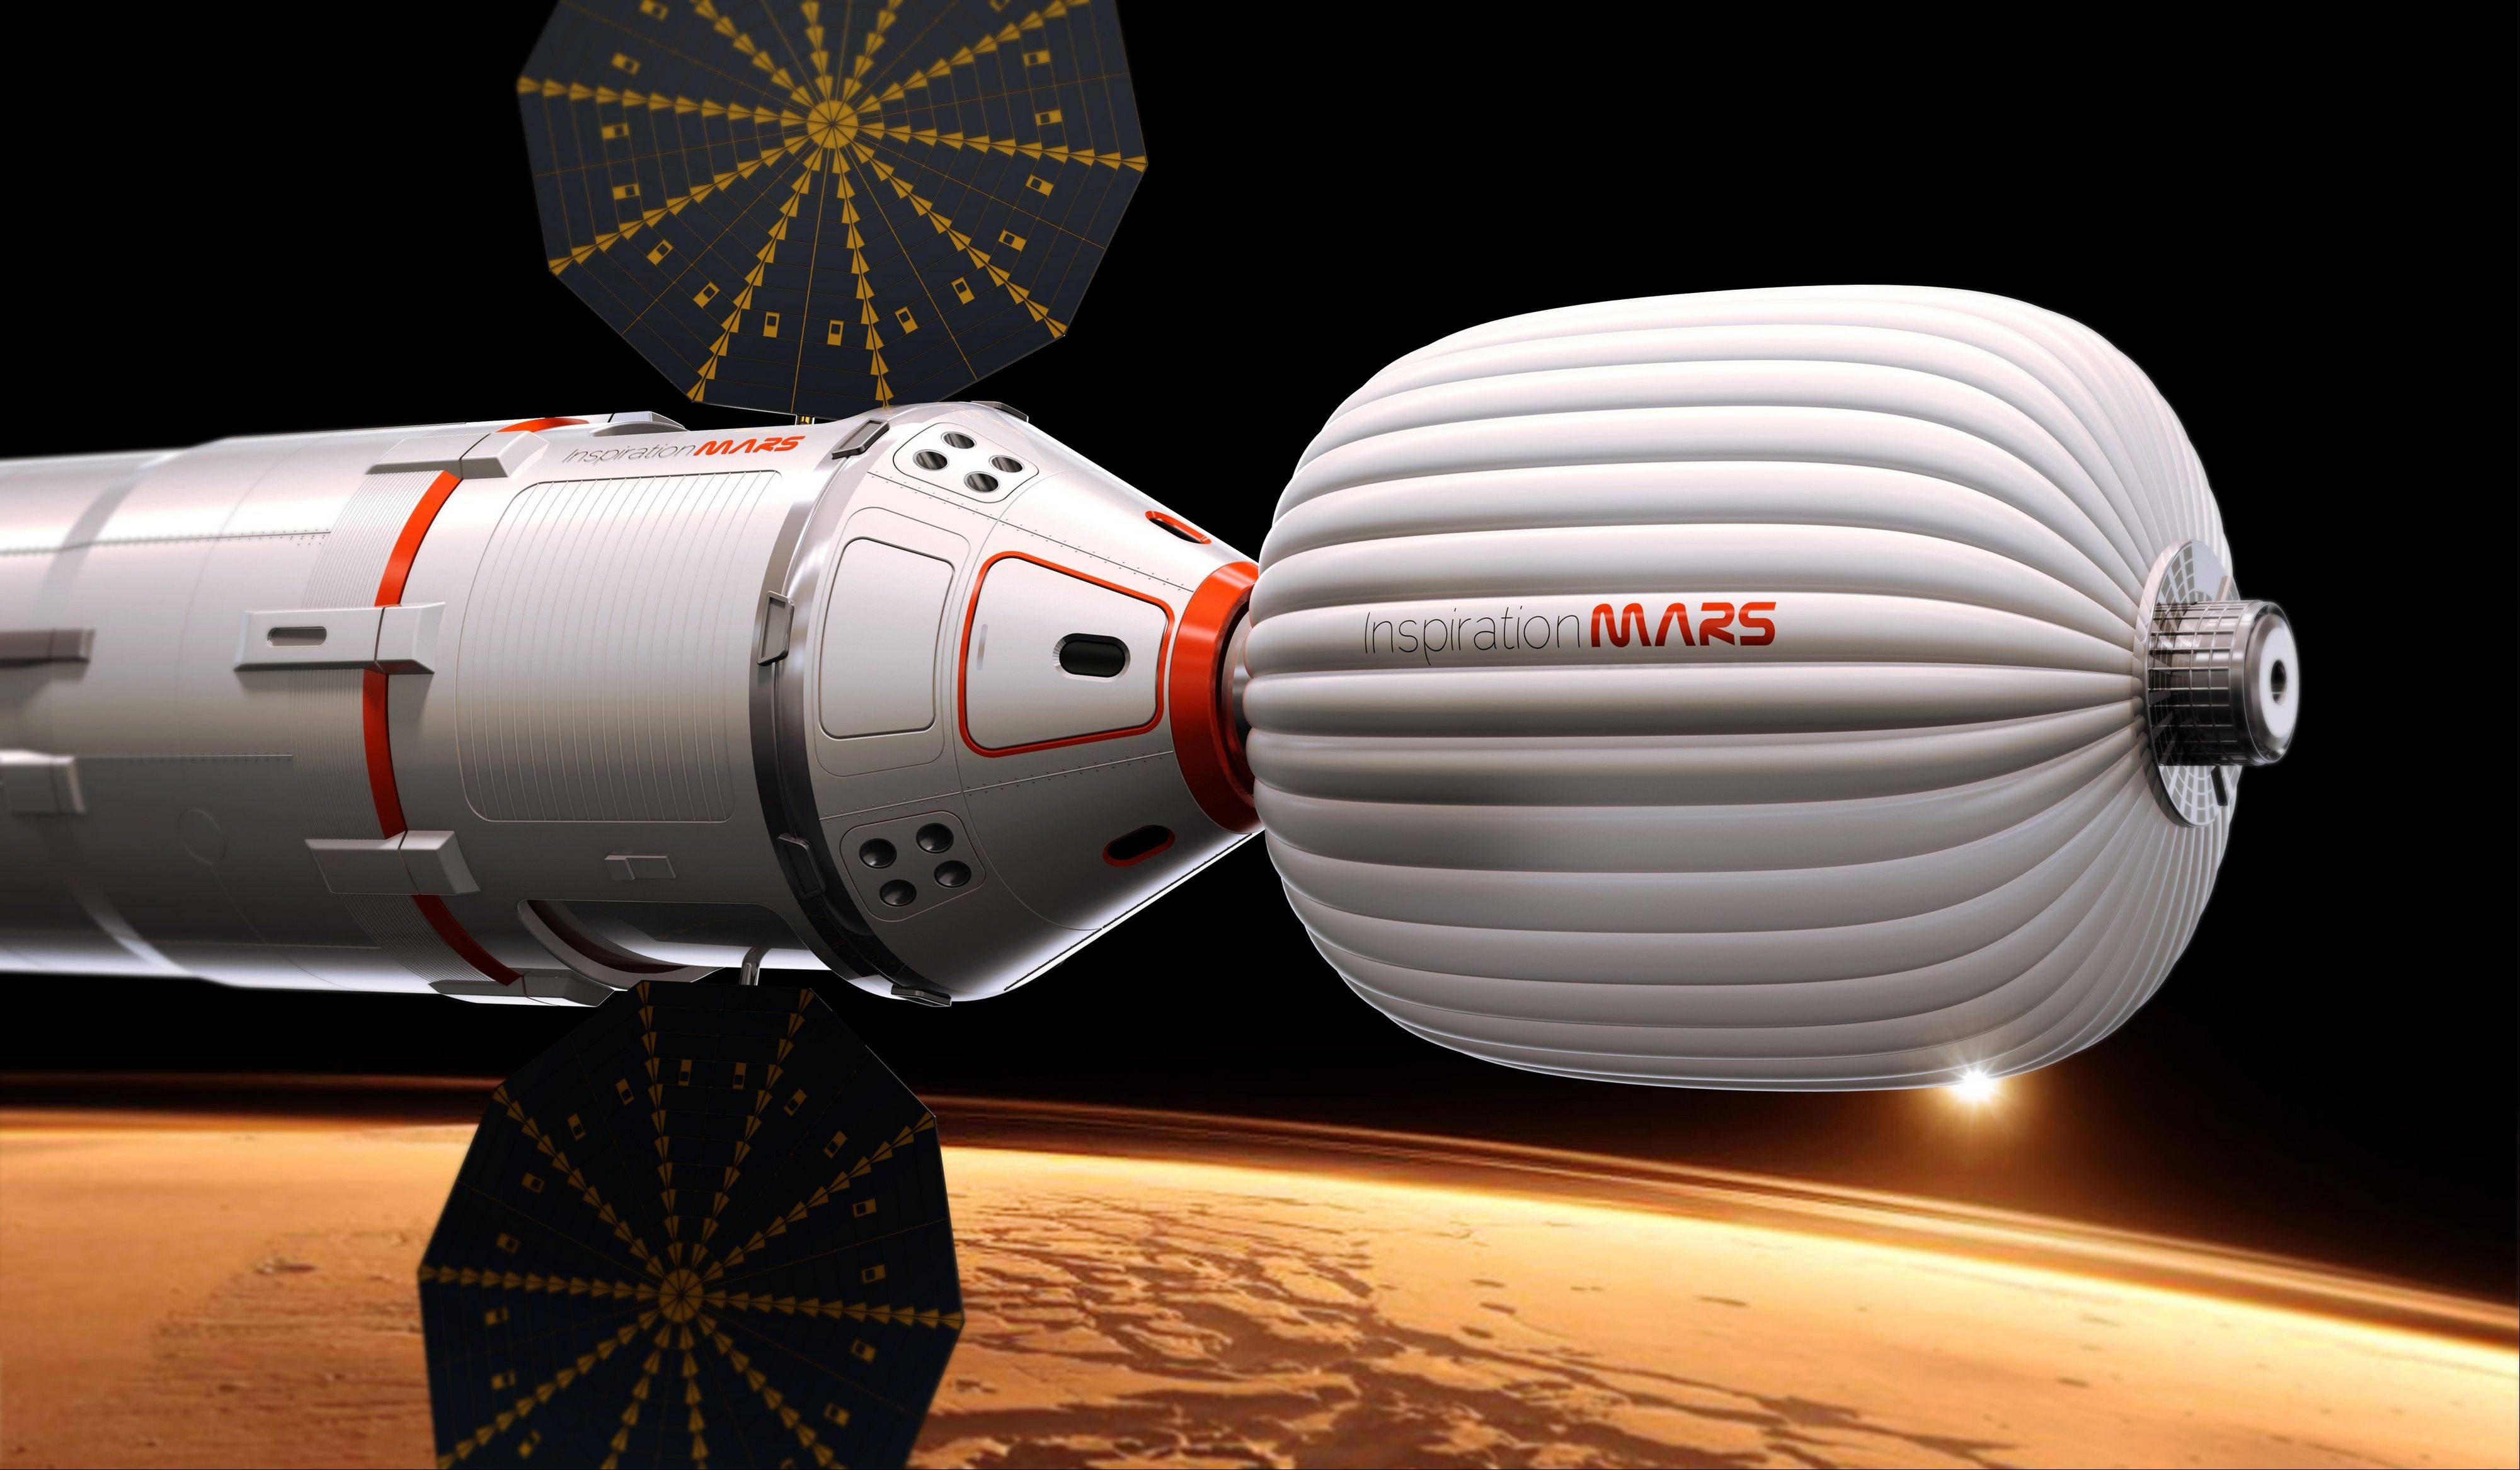 A drawing provided by Inspiration Mars shows an artist's conception of a spacecraft envisioned by the private group, which wants to send a married couple on a mission to fly close to the red planet and zip back home, beginning in 2018.